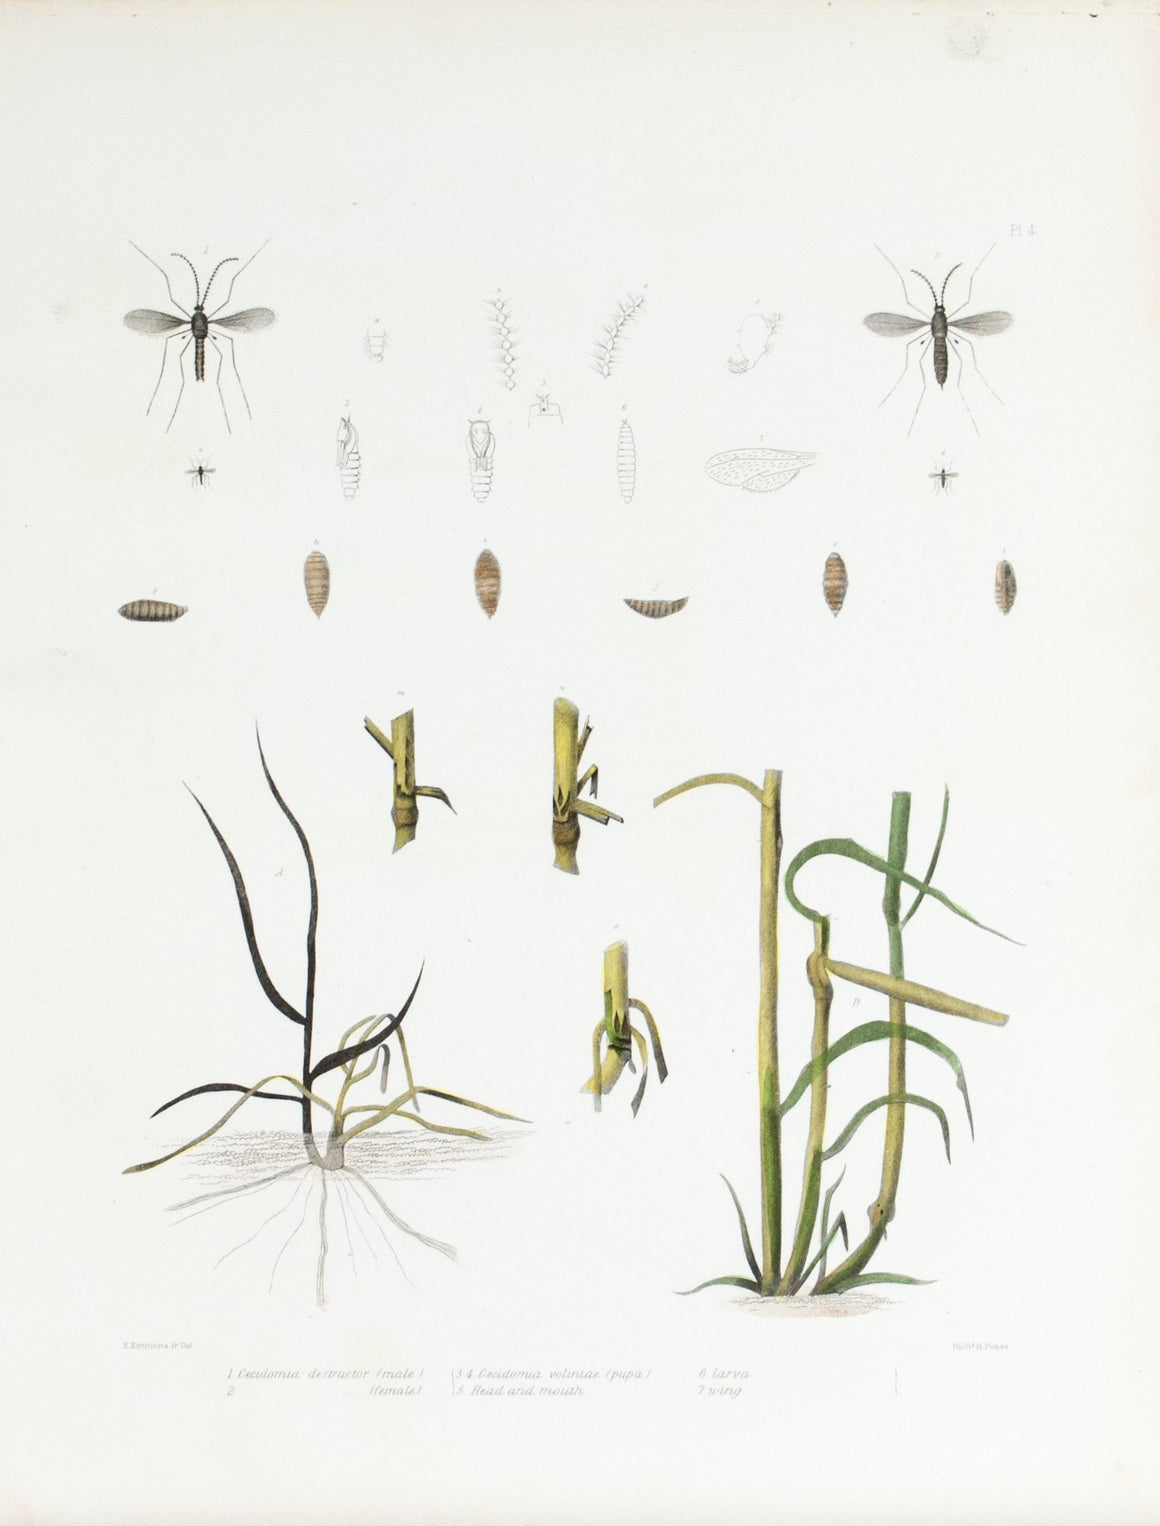 1854 Plate 4 - Hessian Fly - Emmons